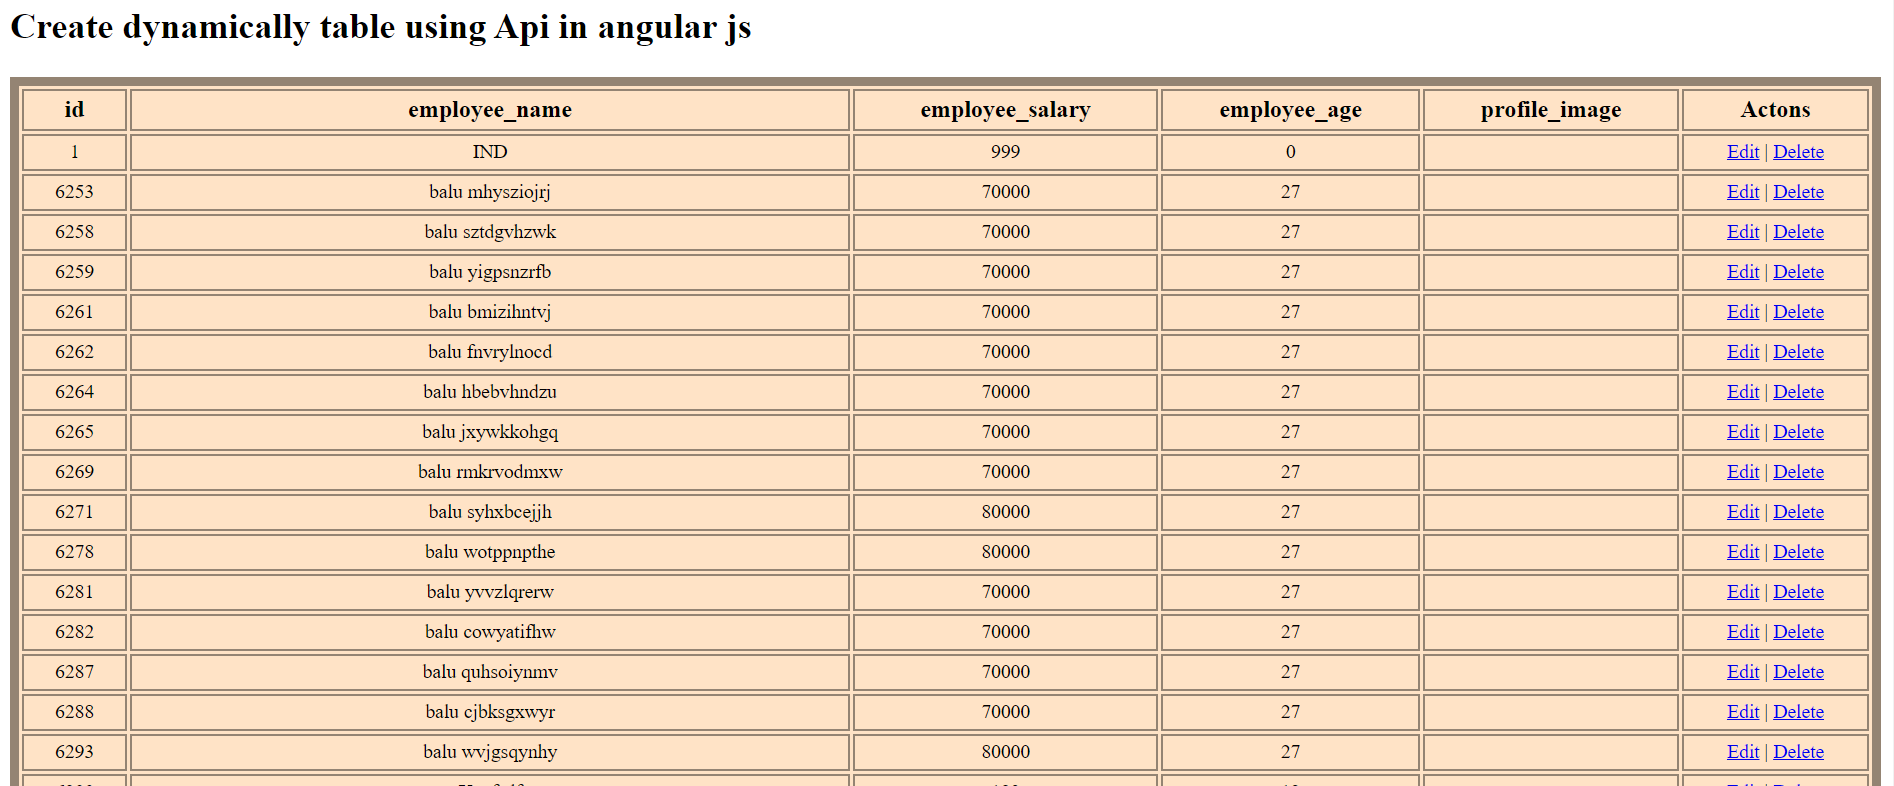 dynamically table using Api in angularjs